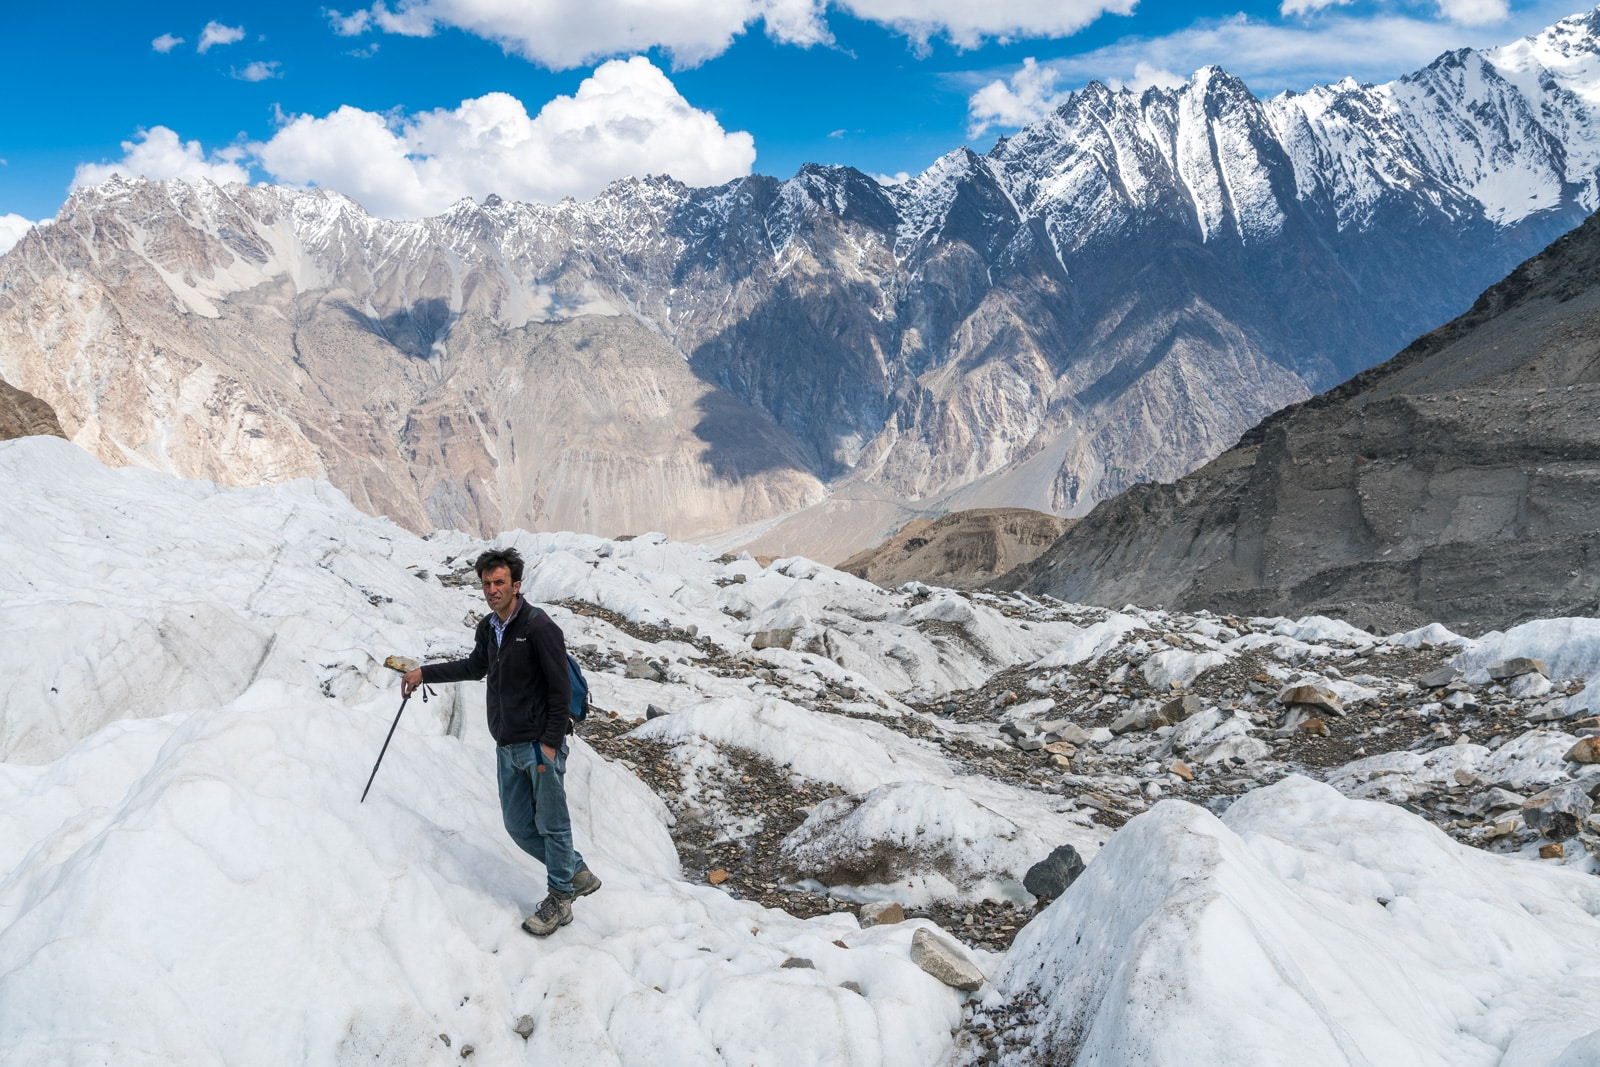 Homestay in Pakistan - Rehman on the white glacier - Lost With Purpose travel blog